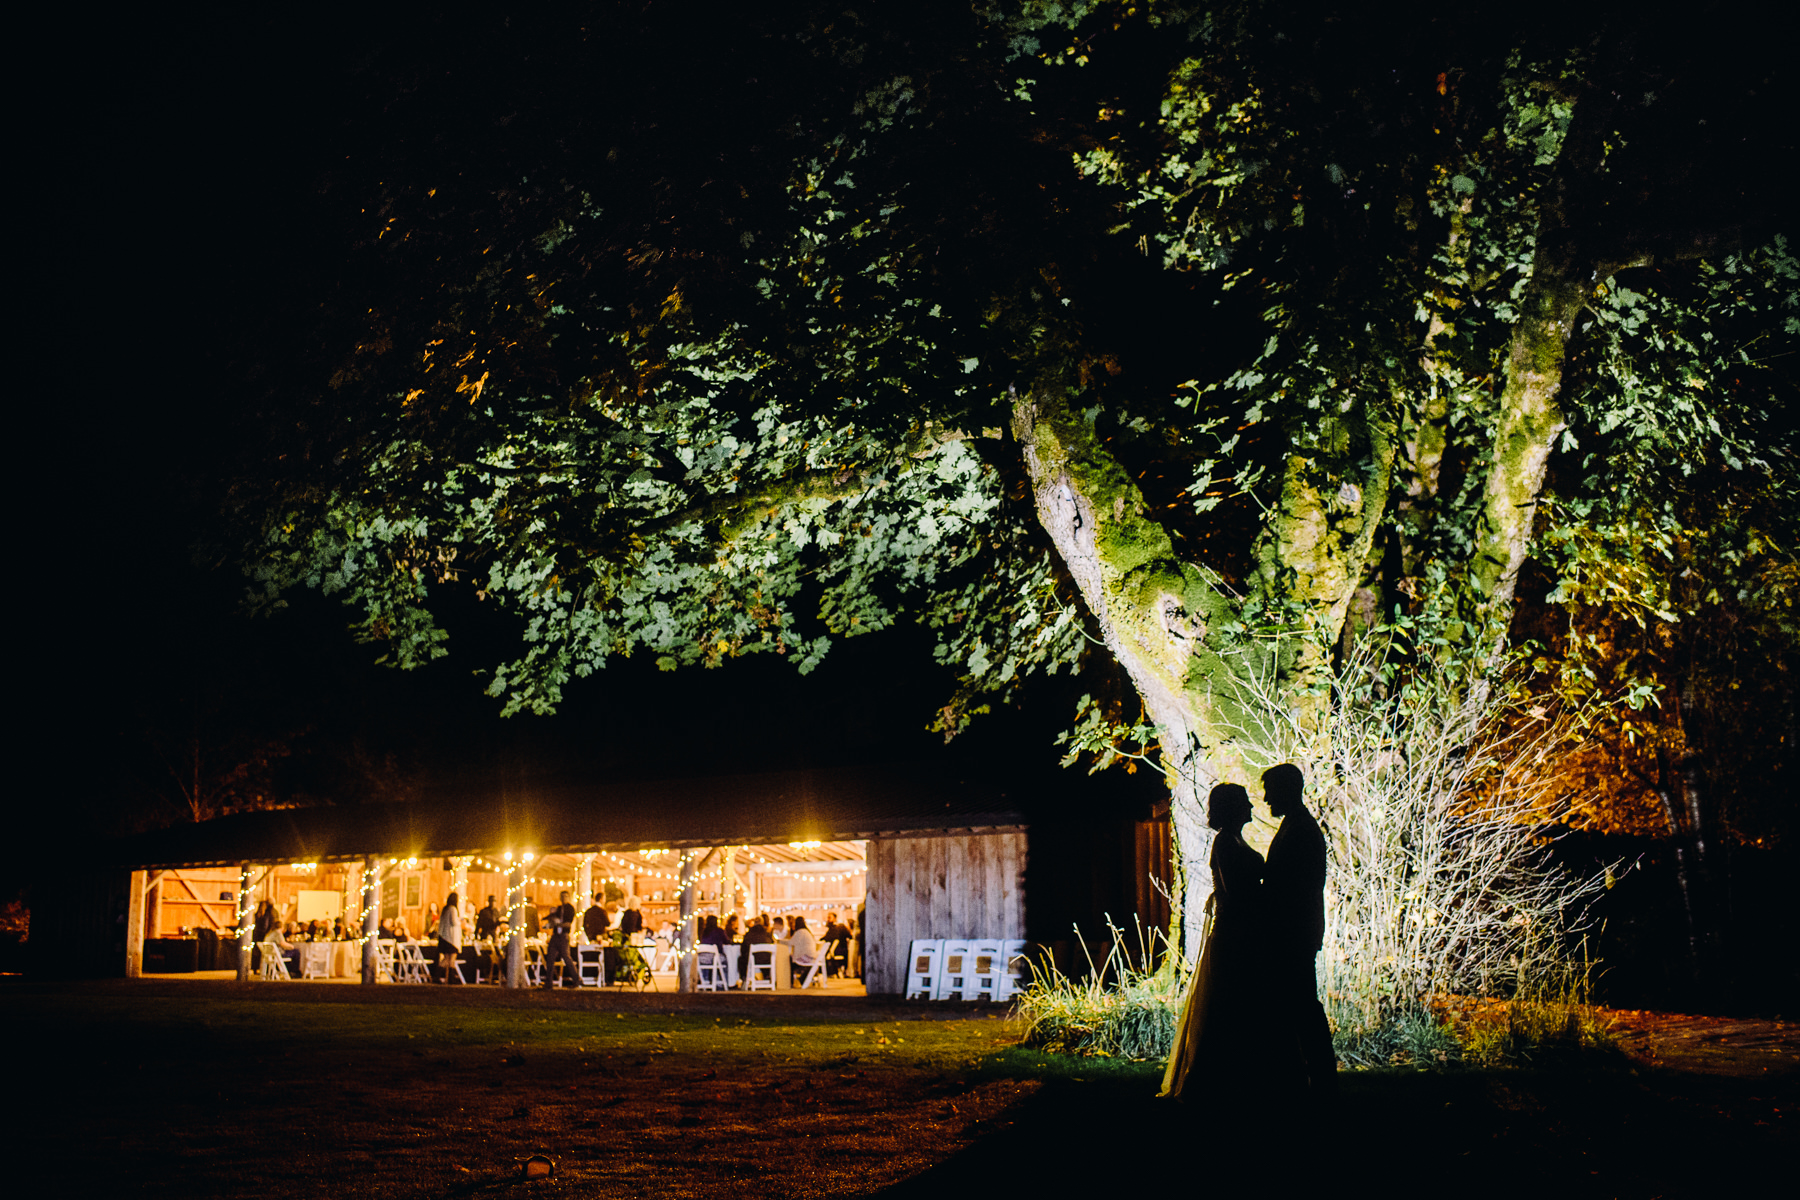 pomeroy farm night wedding photo